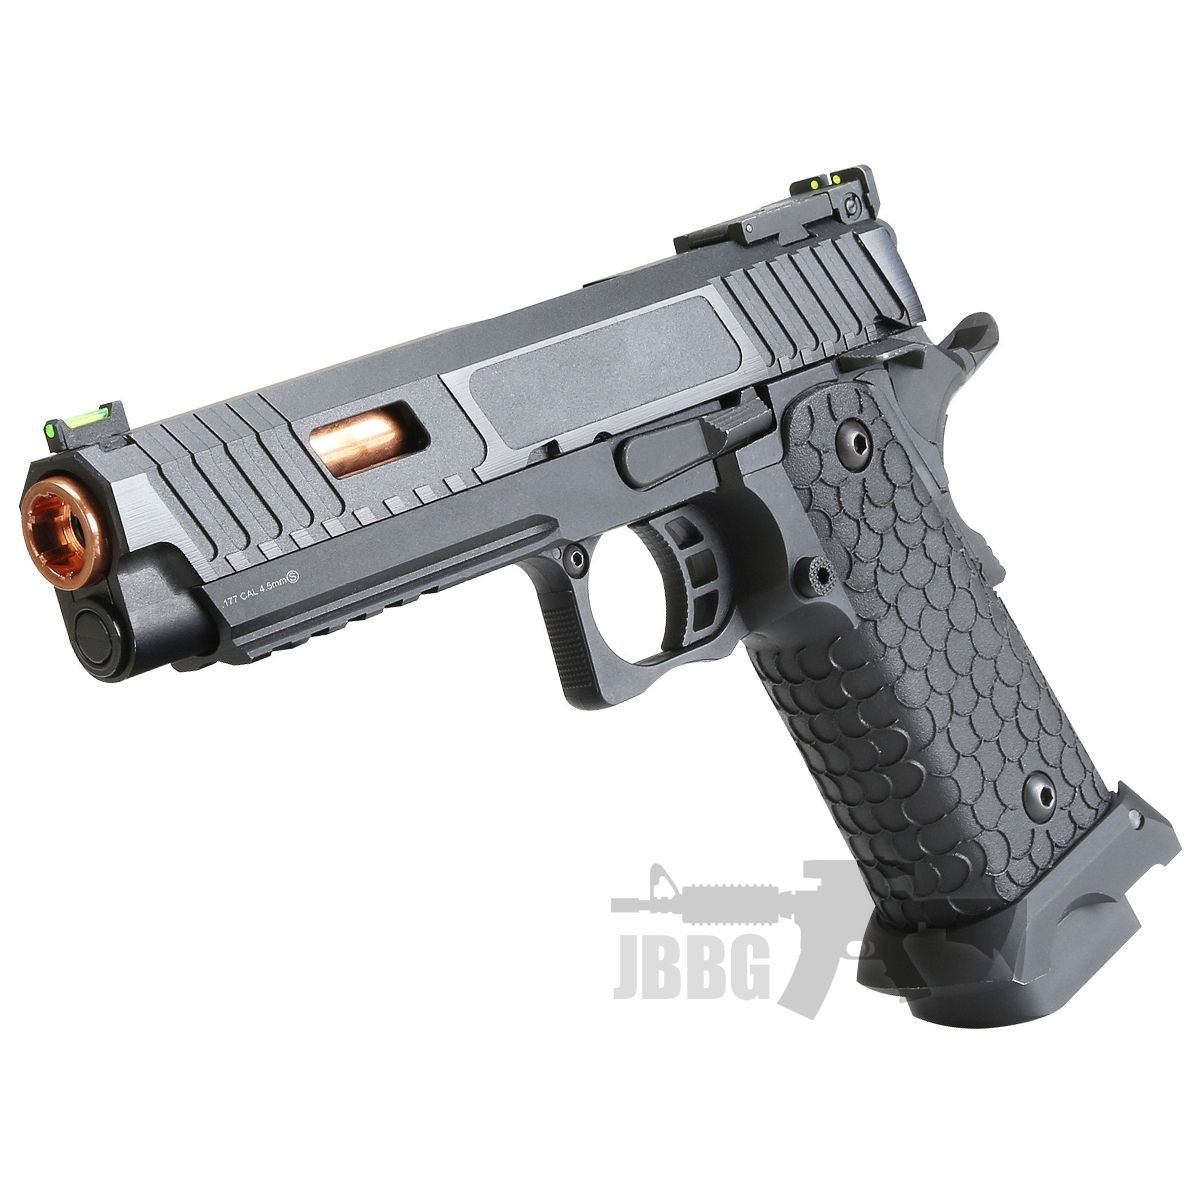 Baba Yaga Combat Master Hi-Capa Co2 Blowback Air Pistol